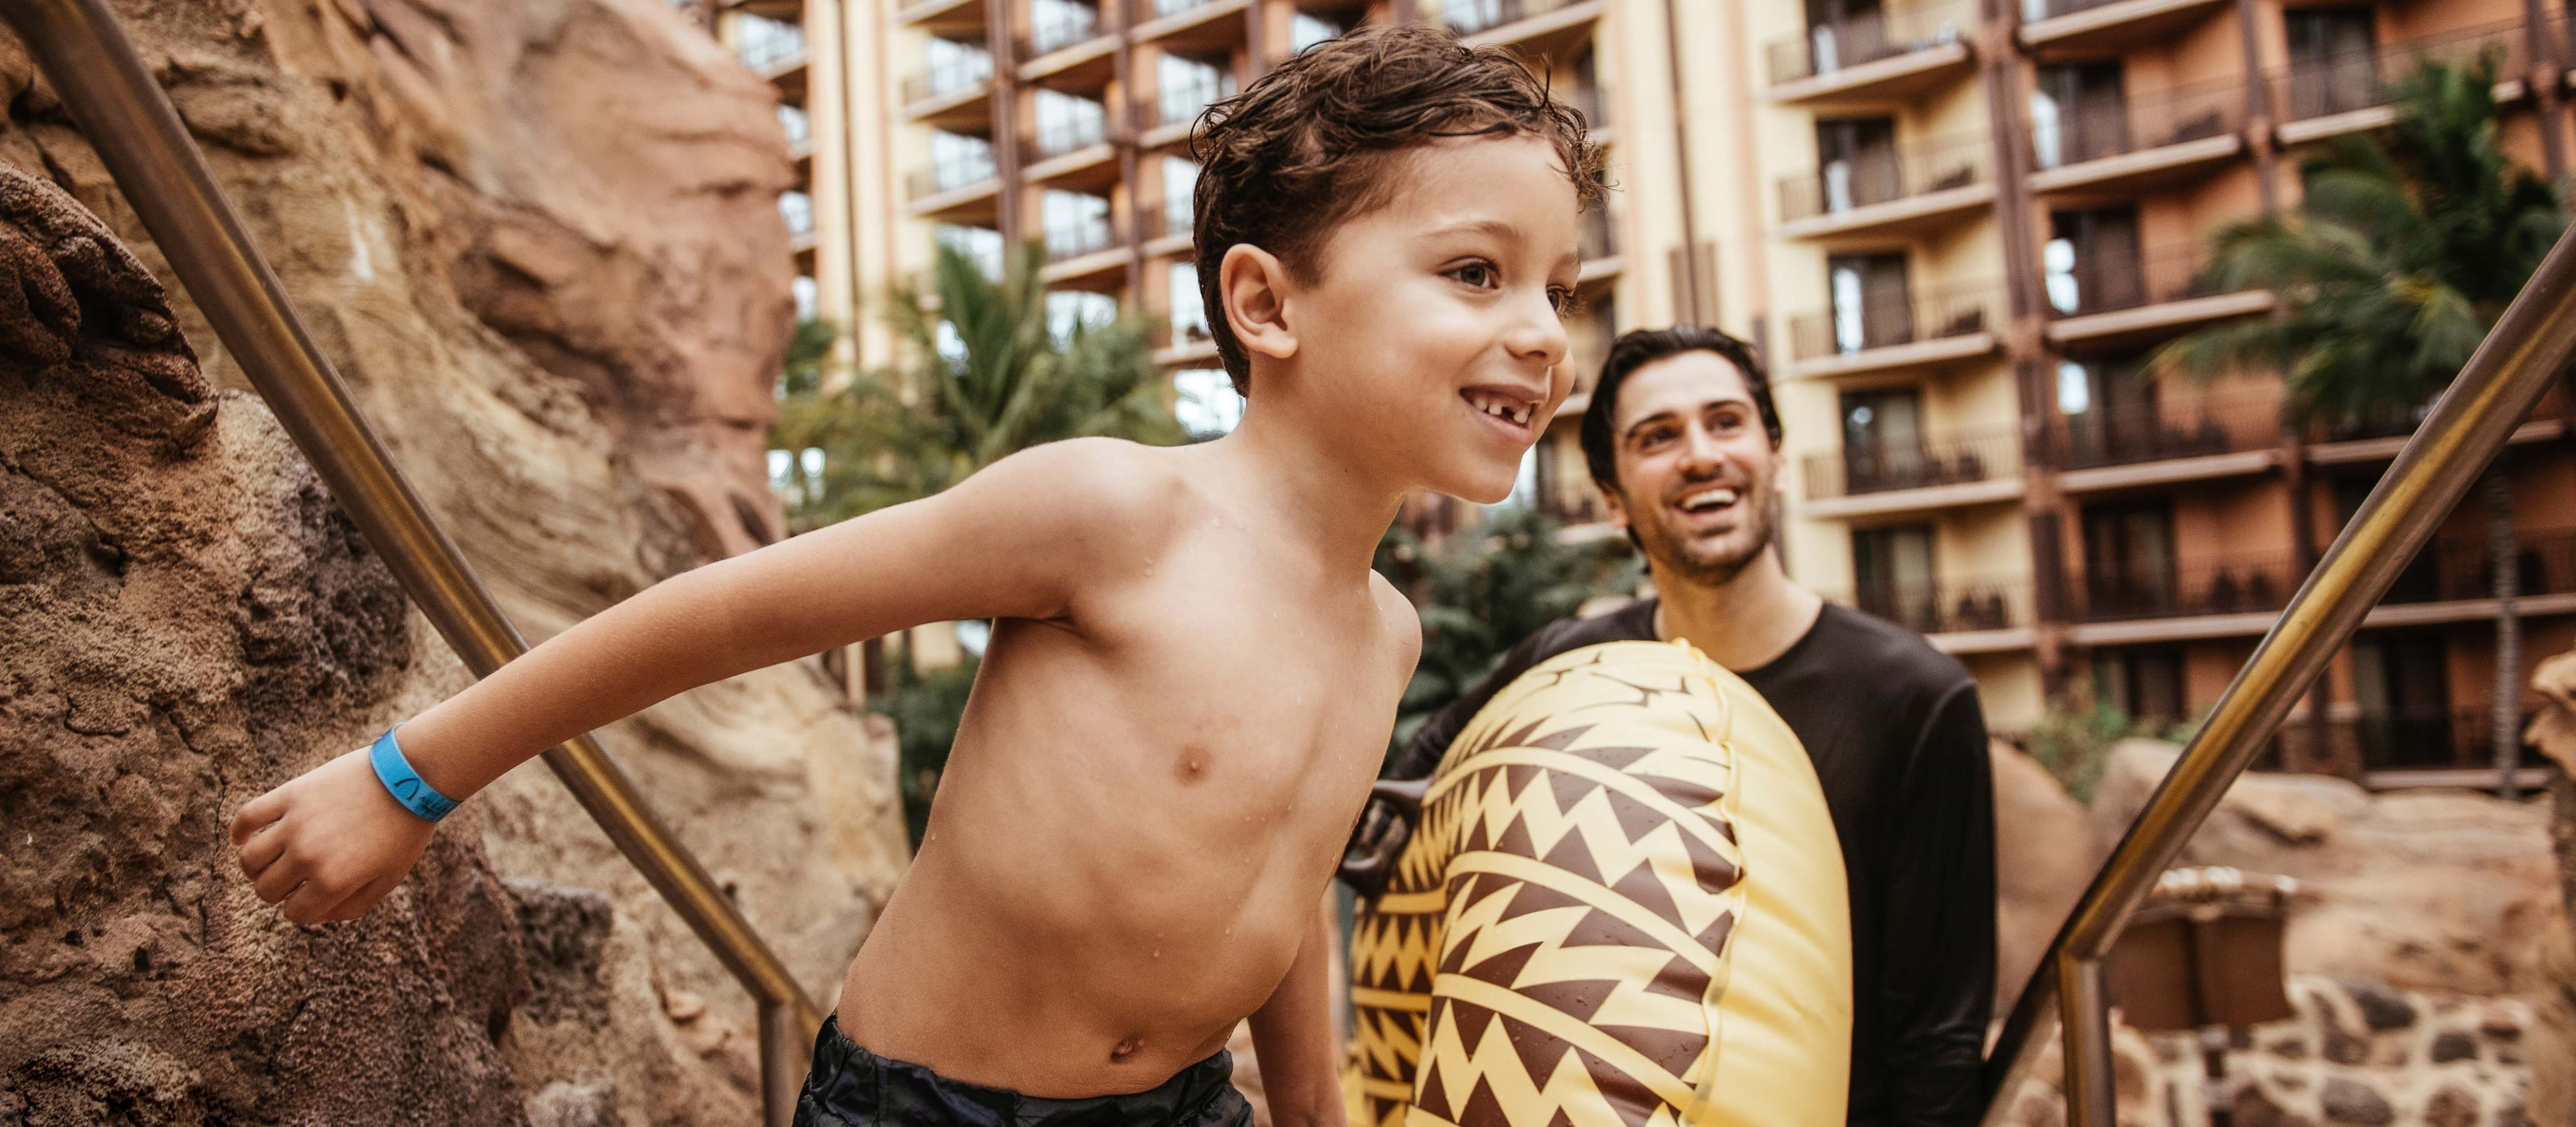 A father holding an inner tube and his son wearing swim trunks stand beside a rock at Aulani Resort